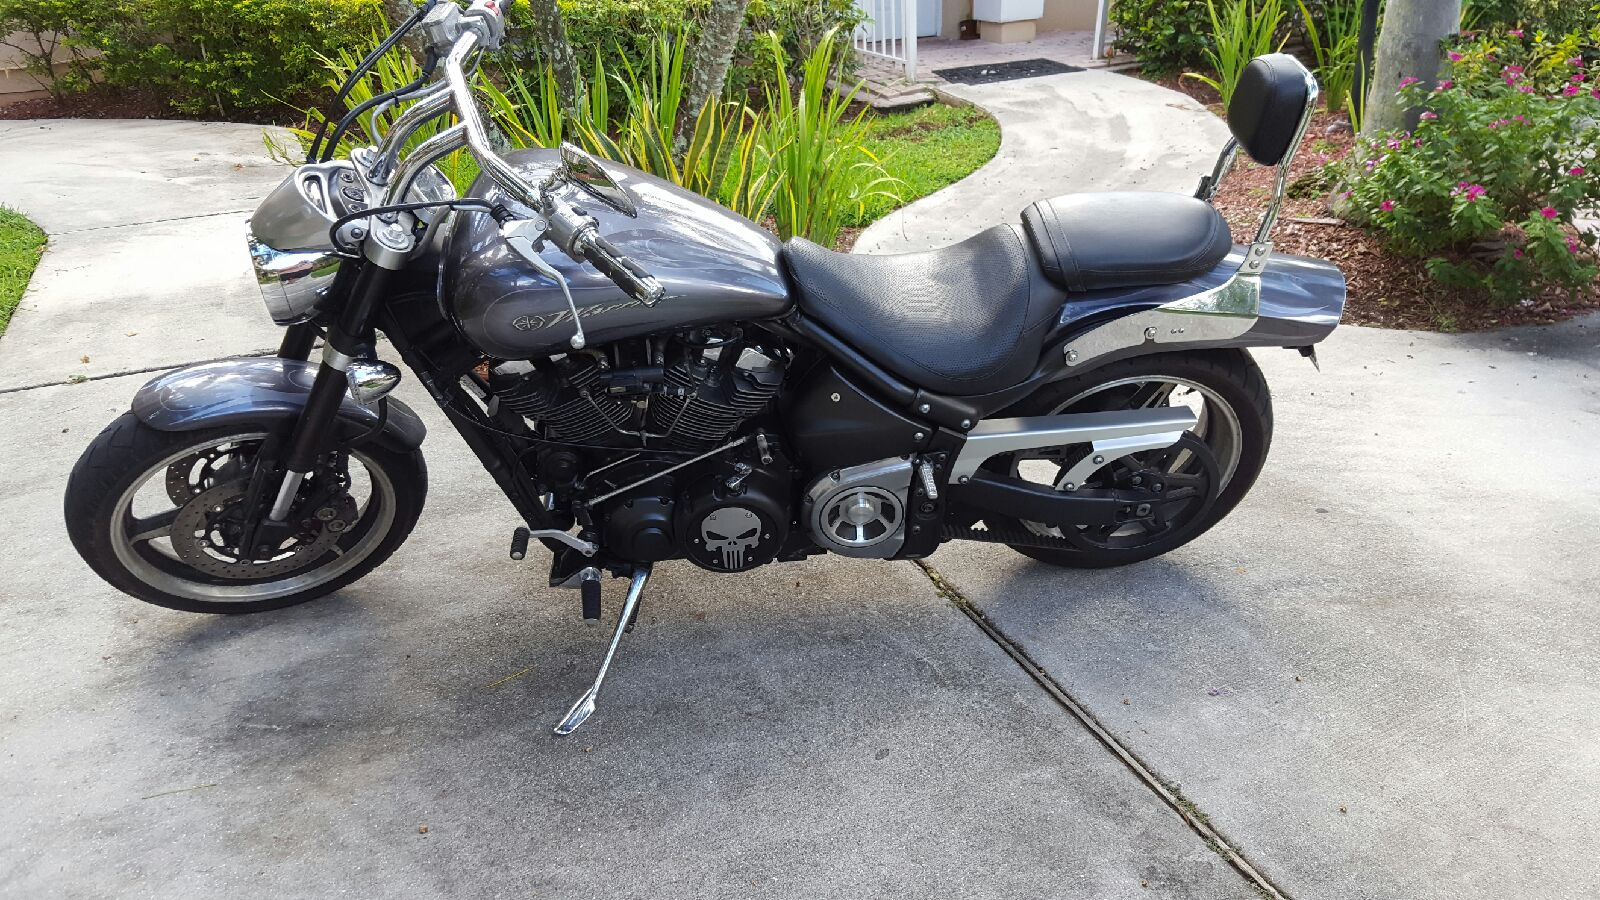 Click image for larger version  Name:Bike with cover 2.jpeg Views:49 Size:400.2 KB ID:213464